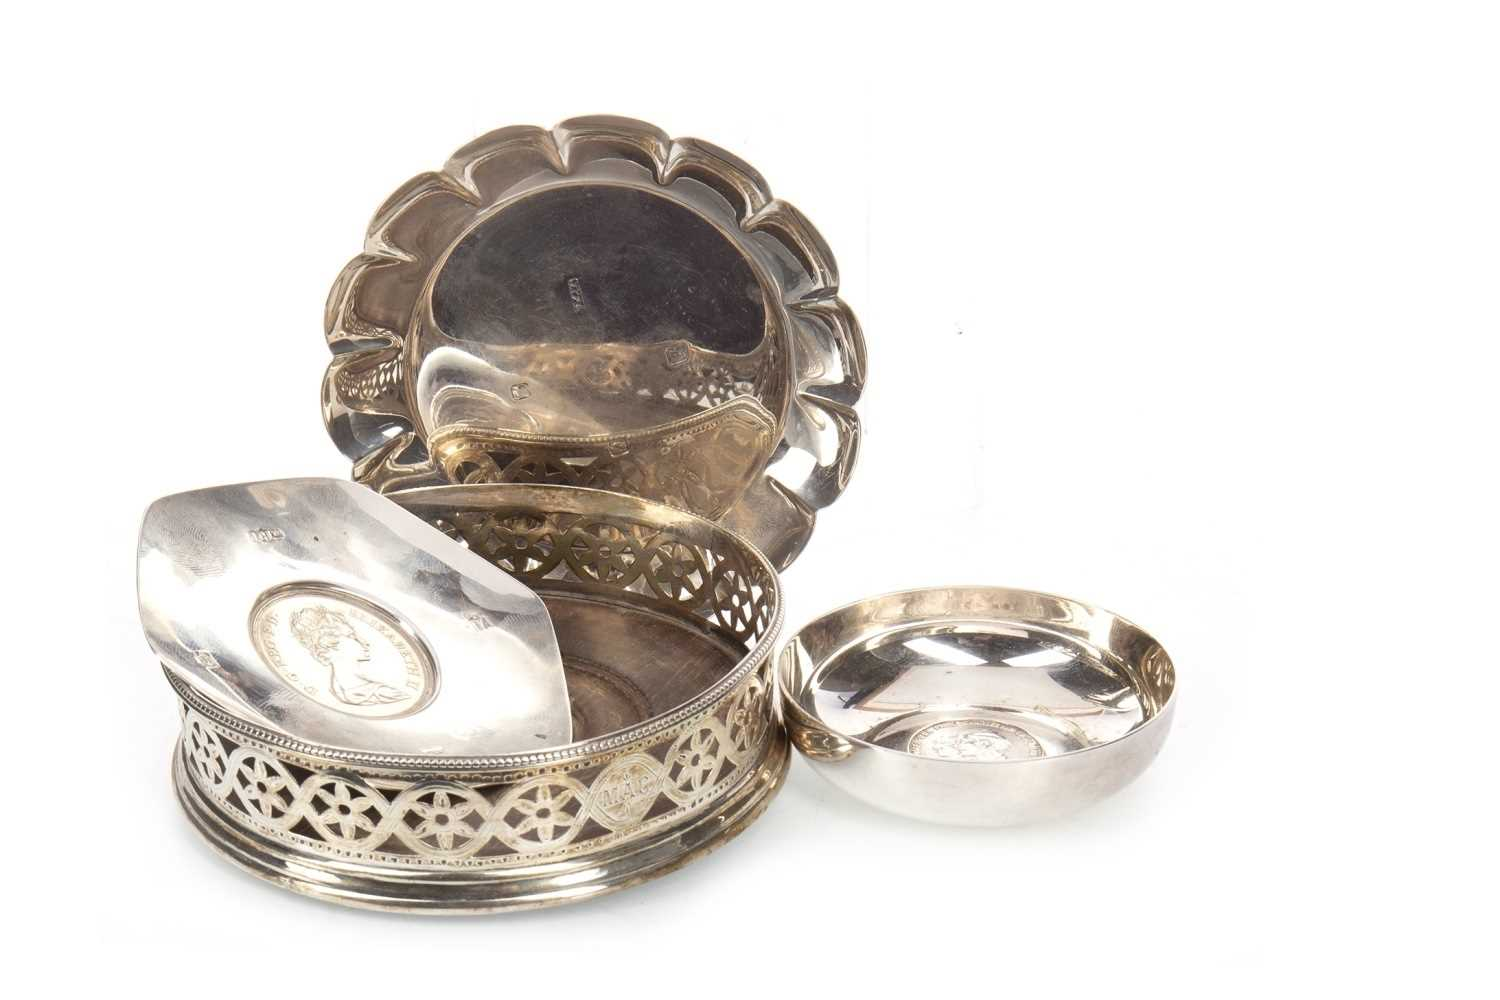 Lot 811-AN EARLY 20TH CENTURY SILVER CIRCULAR WINE SLIDE ALONG WITH THREE SILVER DISHES